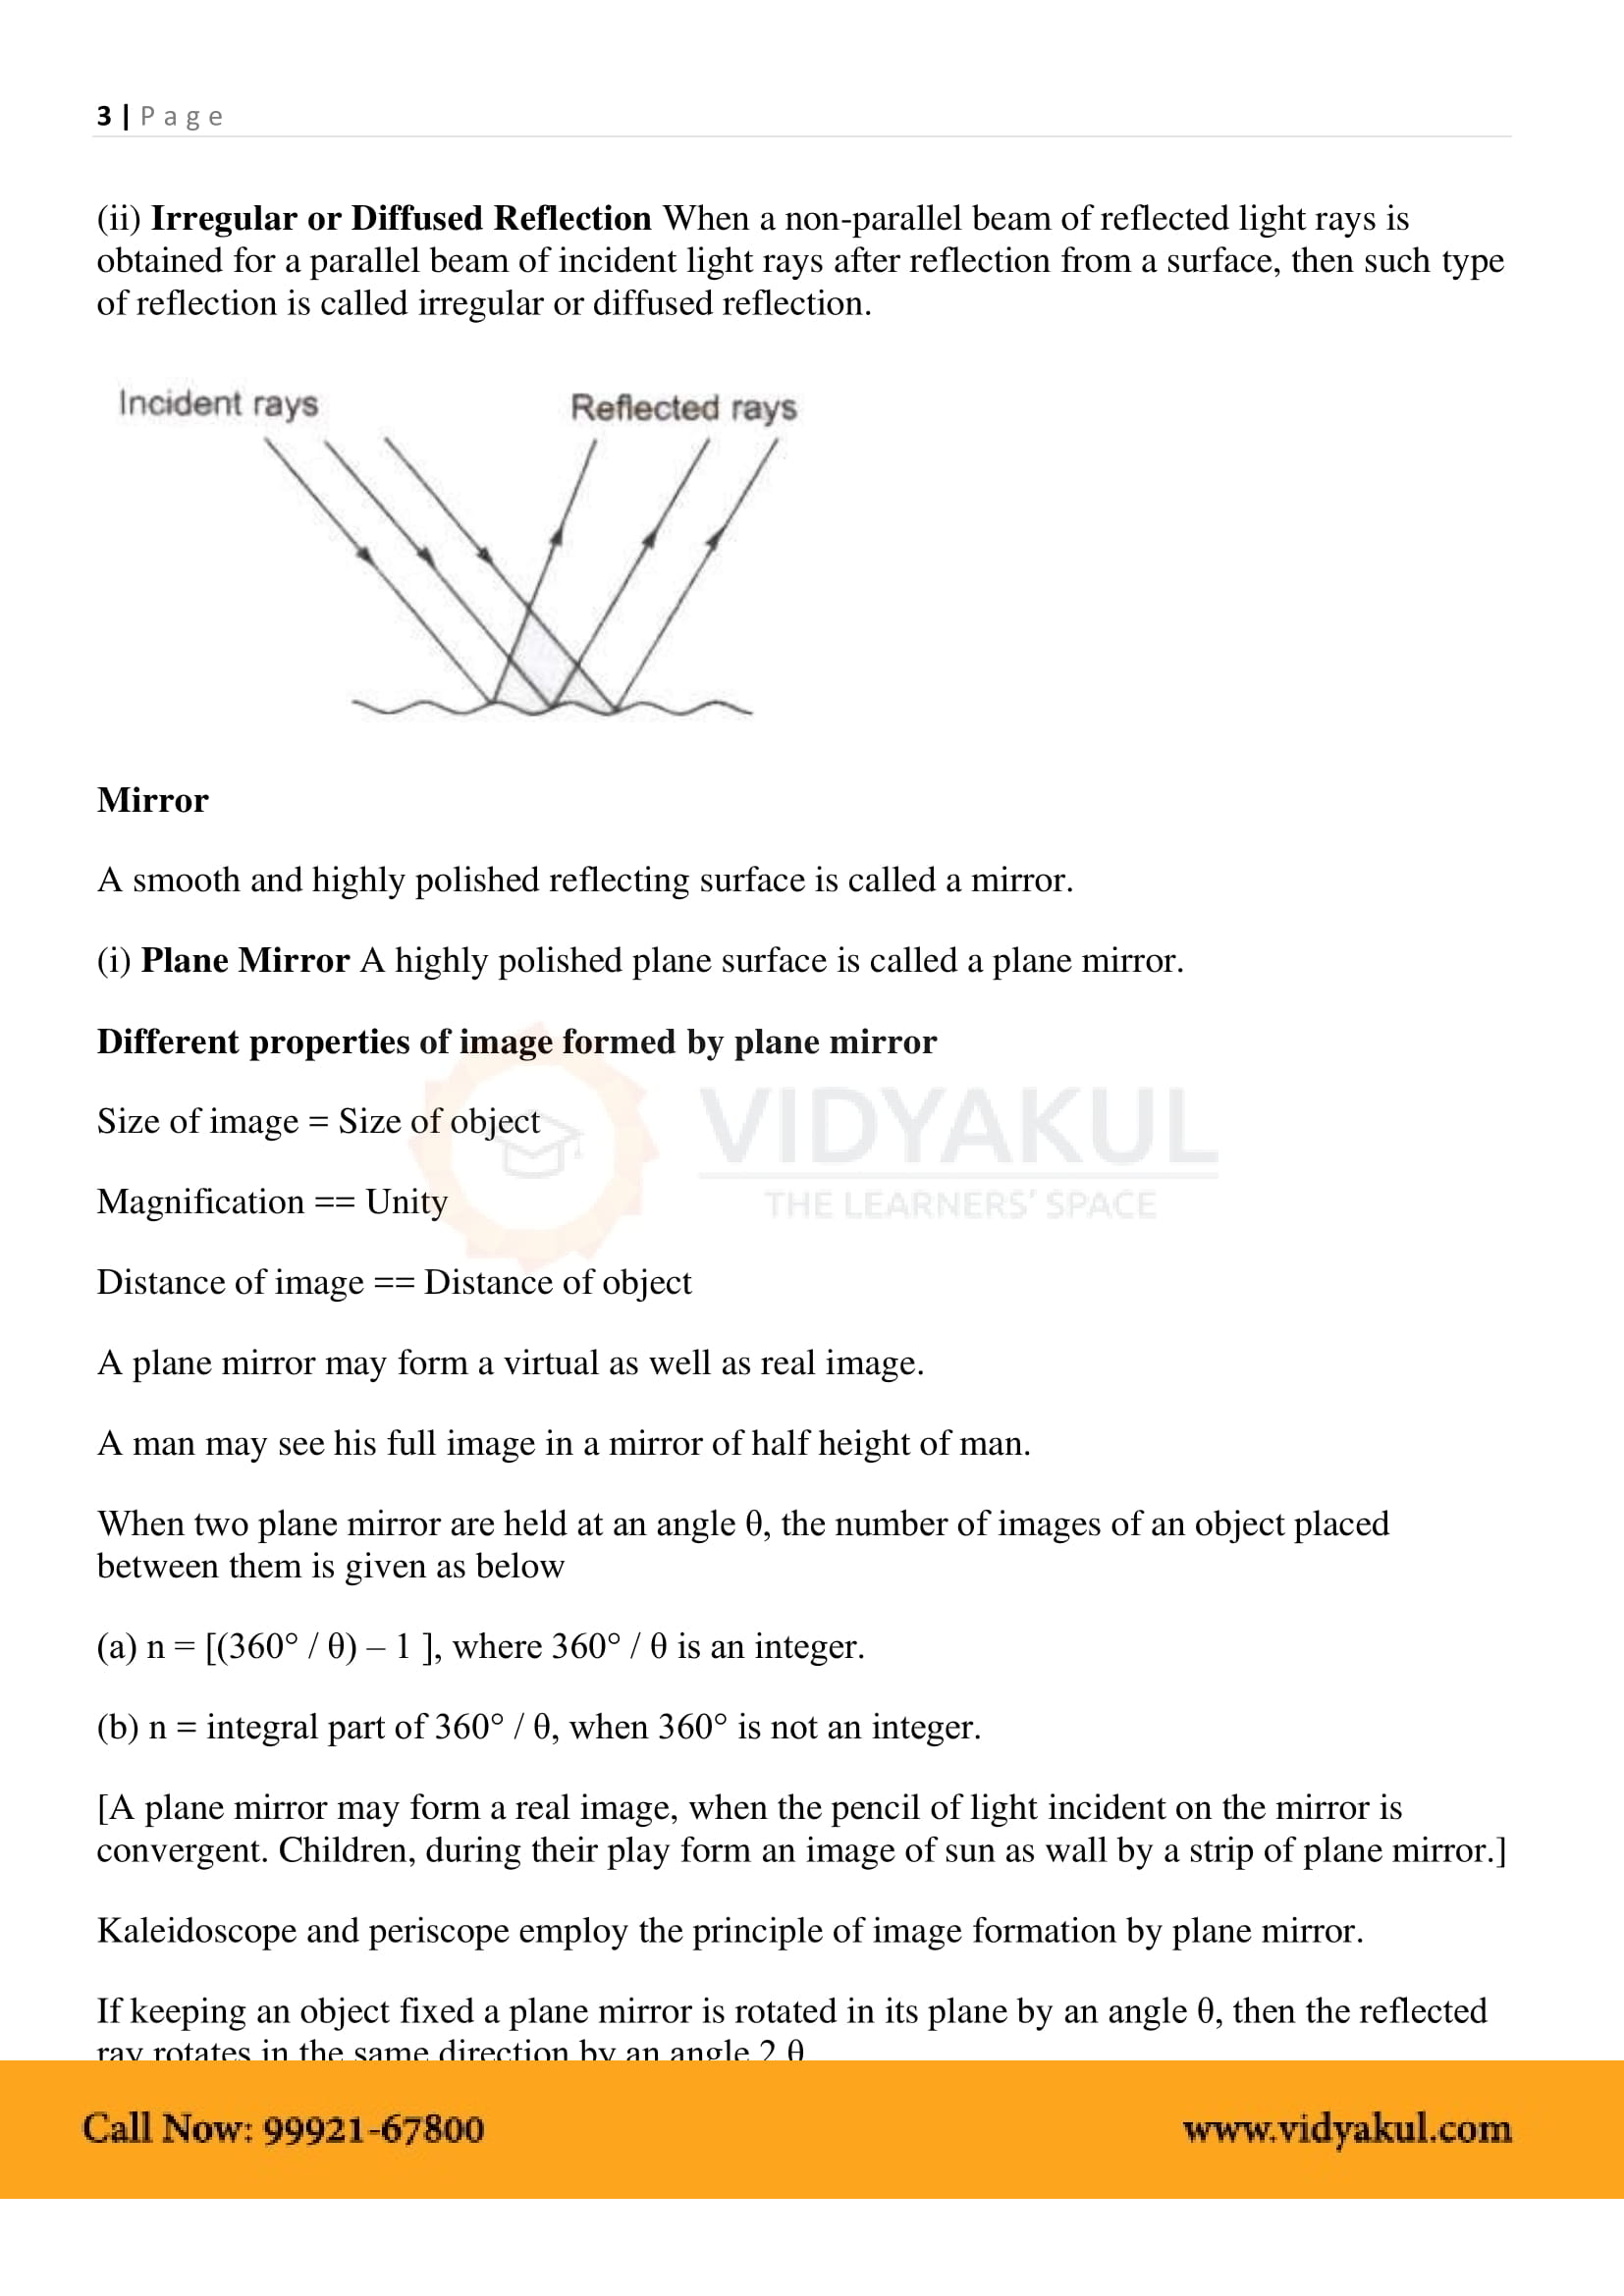 Ray Optics and Optical Instruments Class 12 Notes | Vidyakul